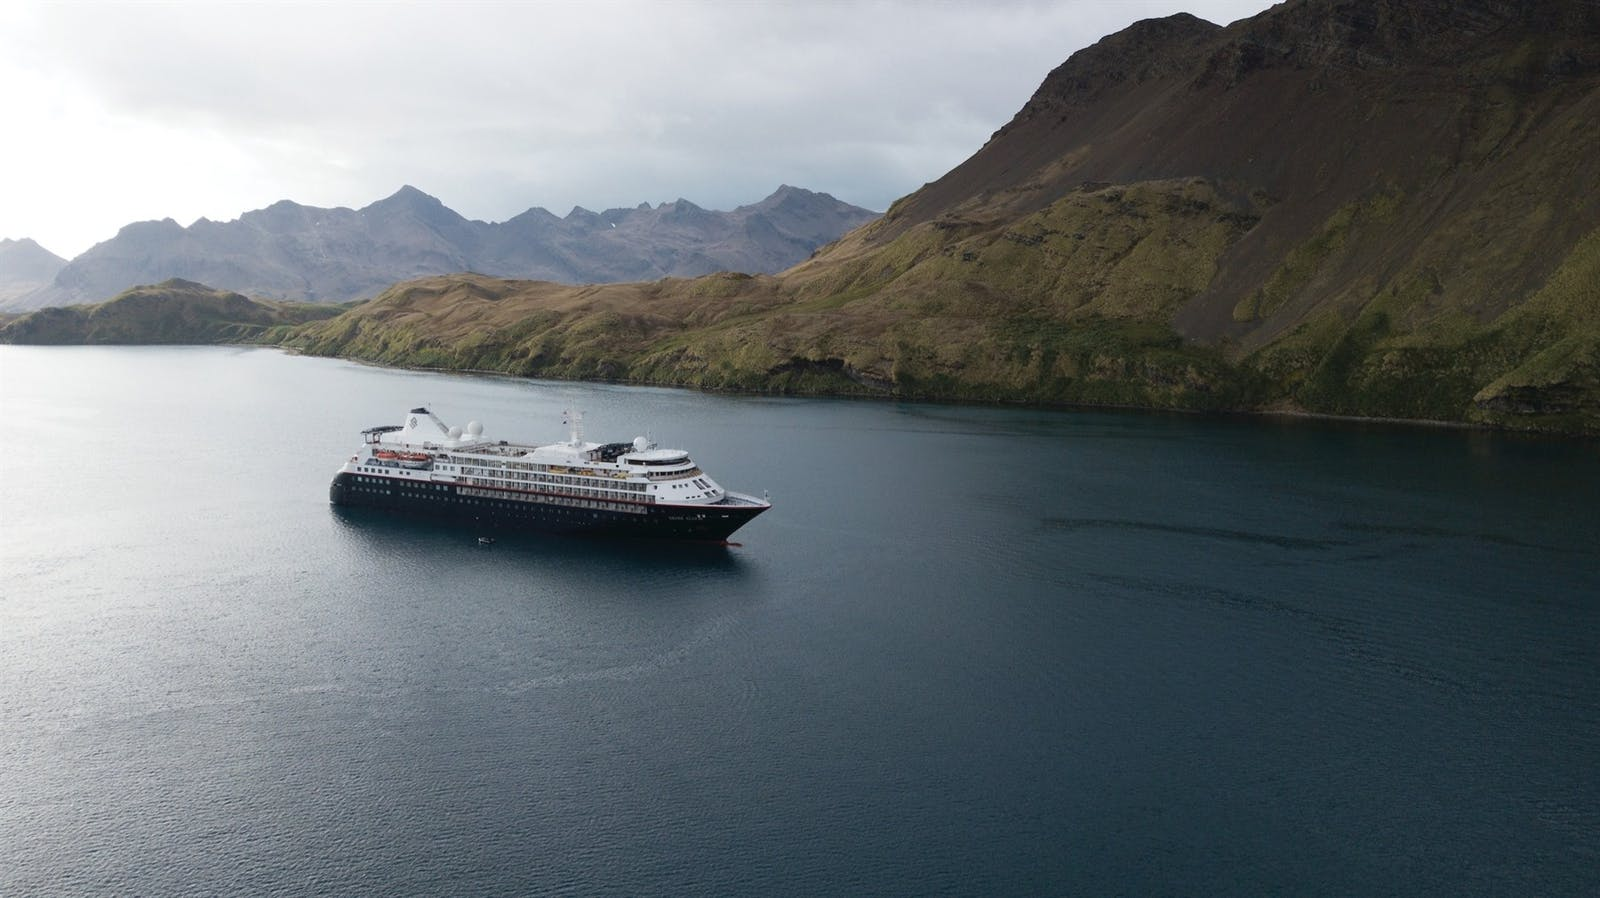 Aerial view of Silversea Silver Cloud